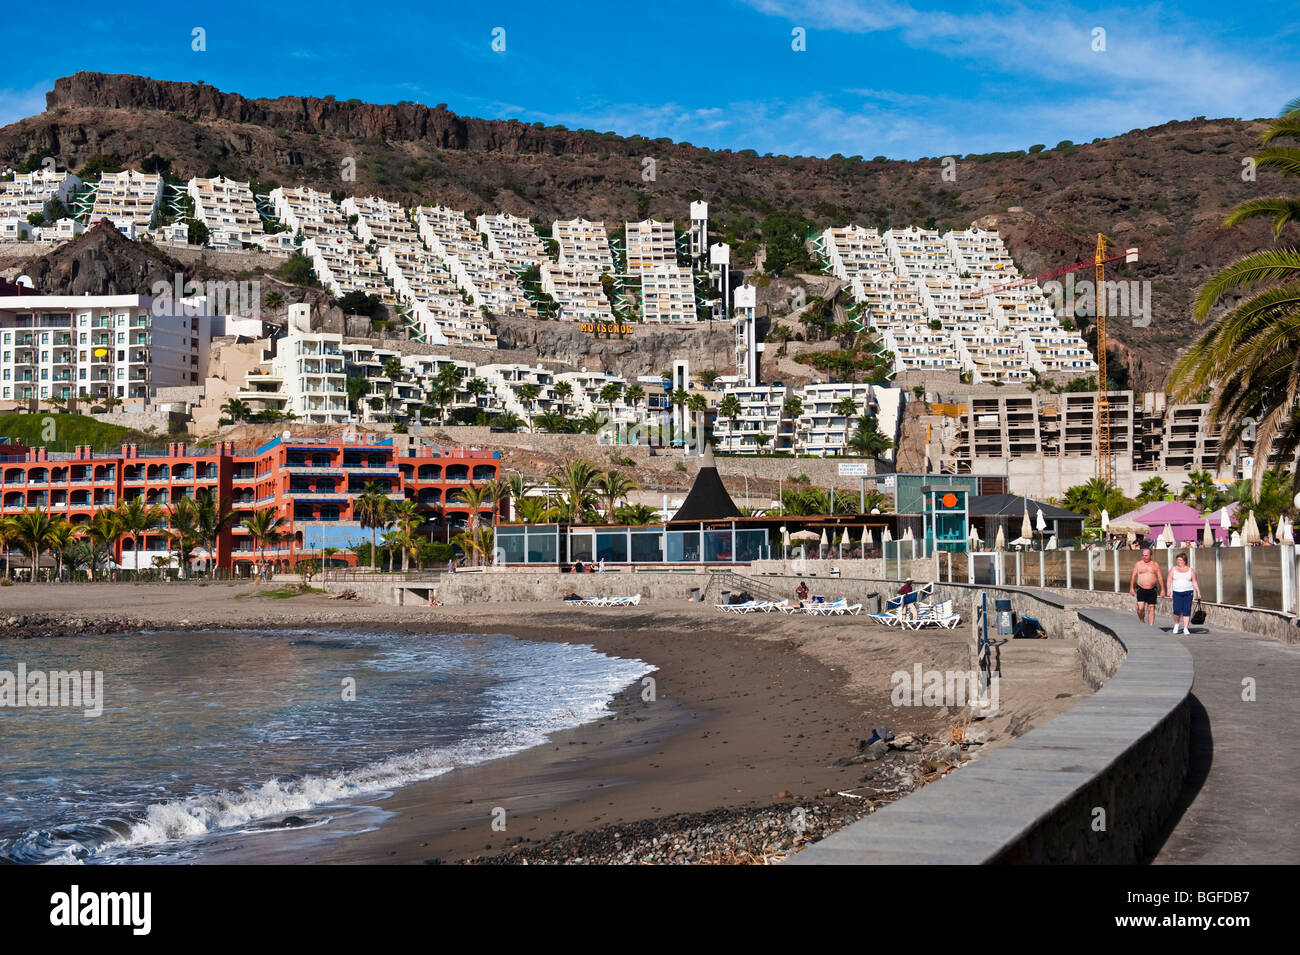 The Beach At Playa Del Cura On Gran Canaria In The Canary